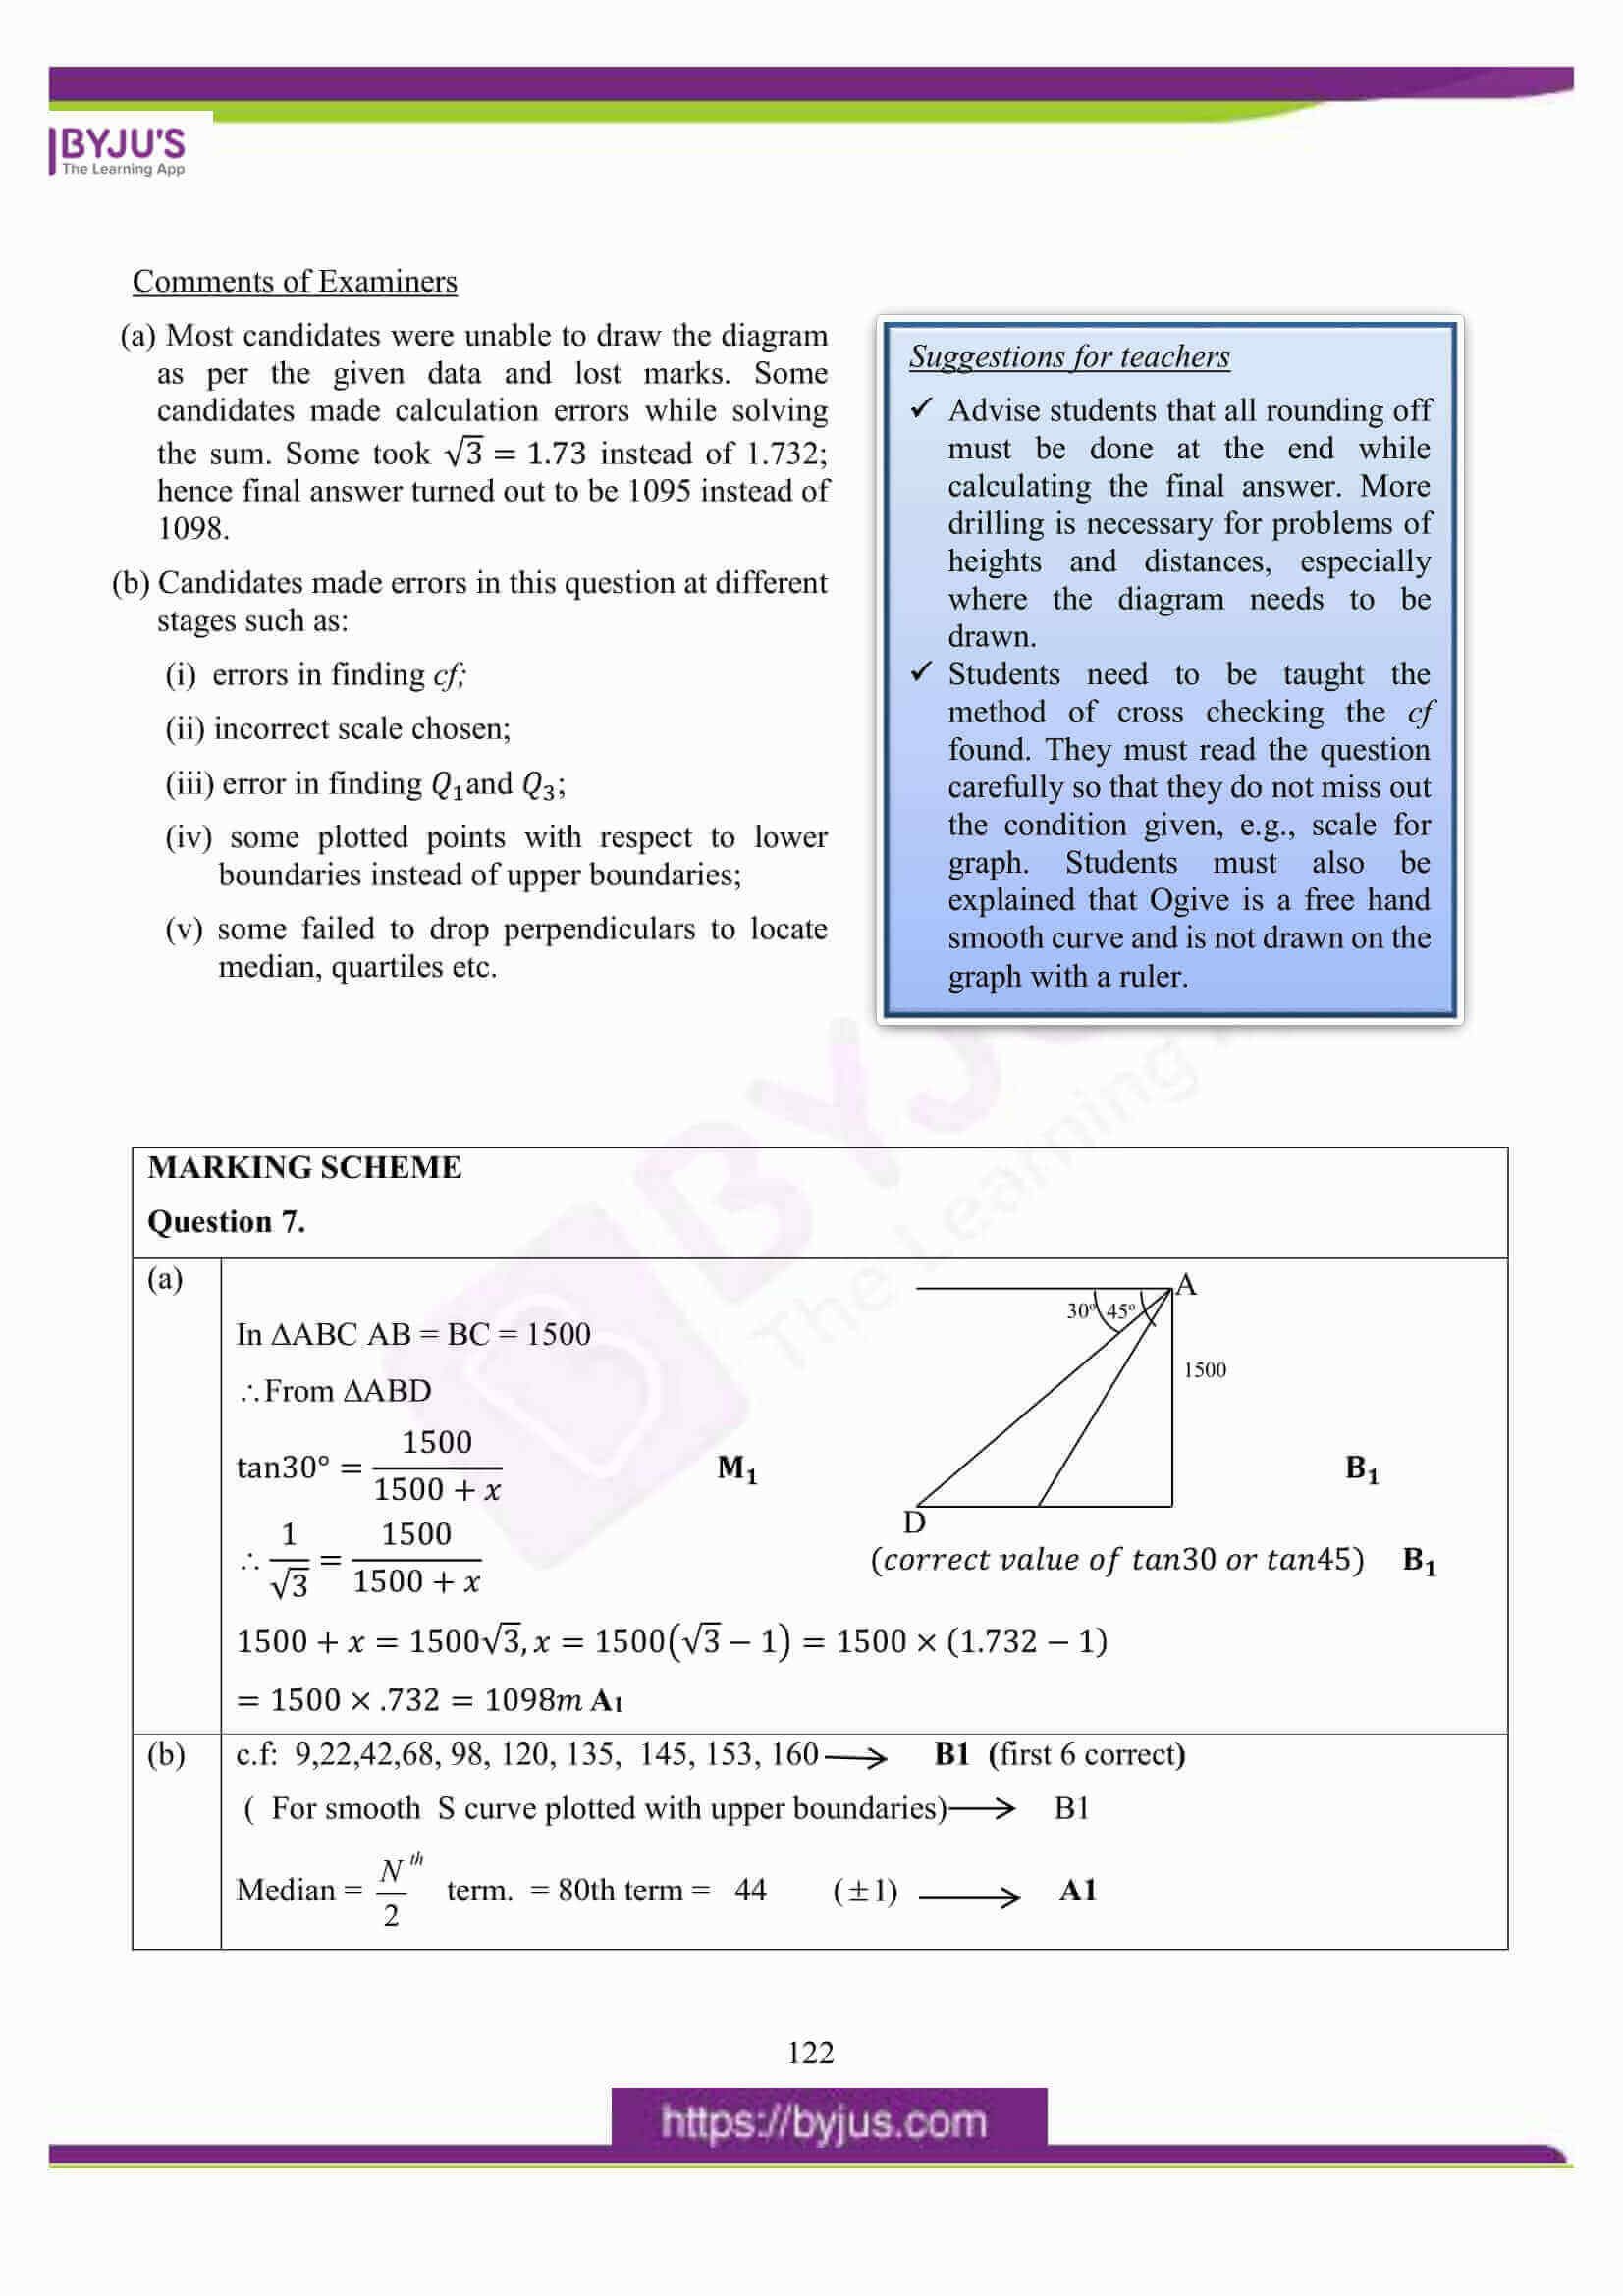 icse class 10 maths question paper solution 2016 16